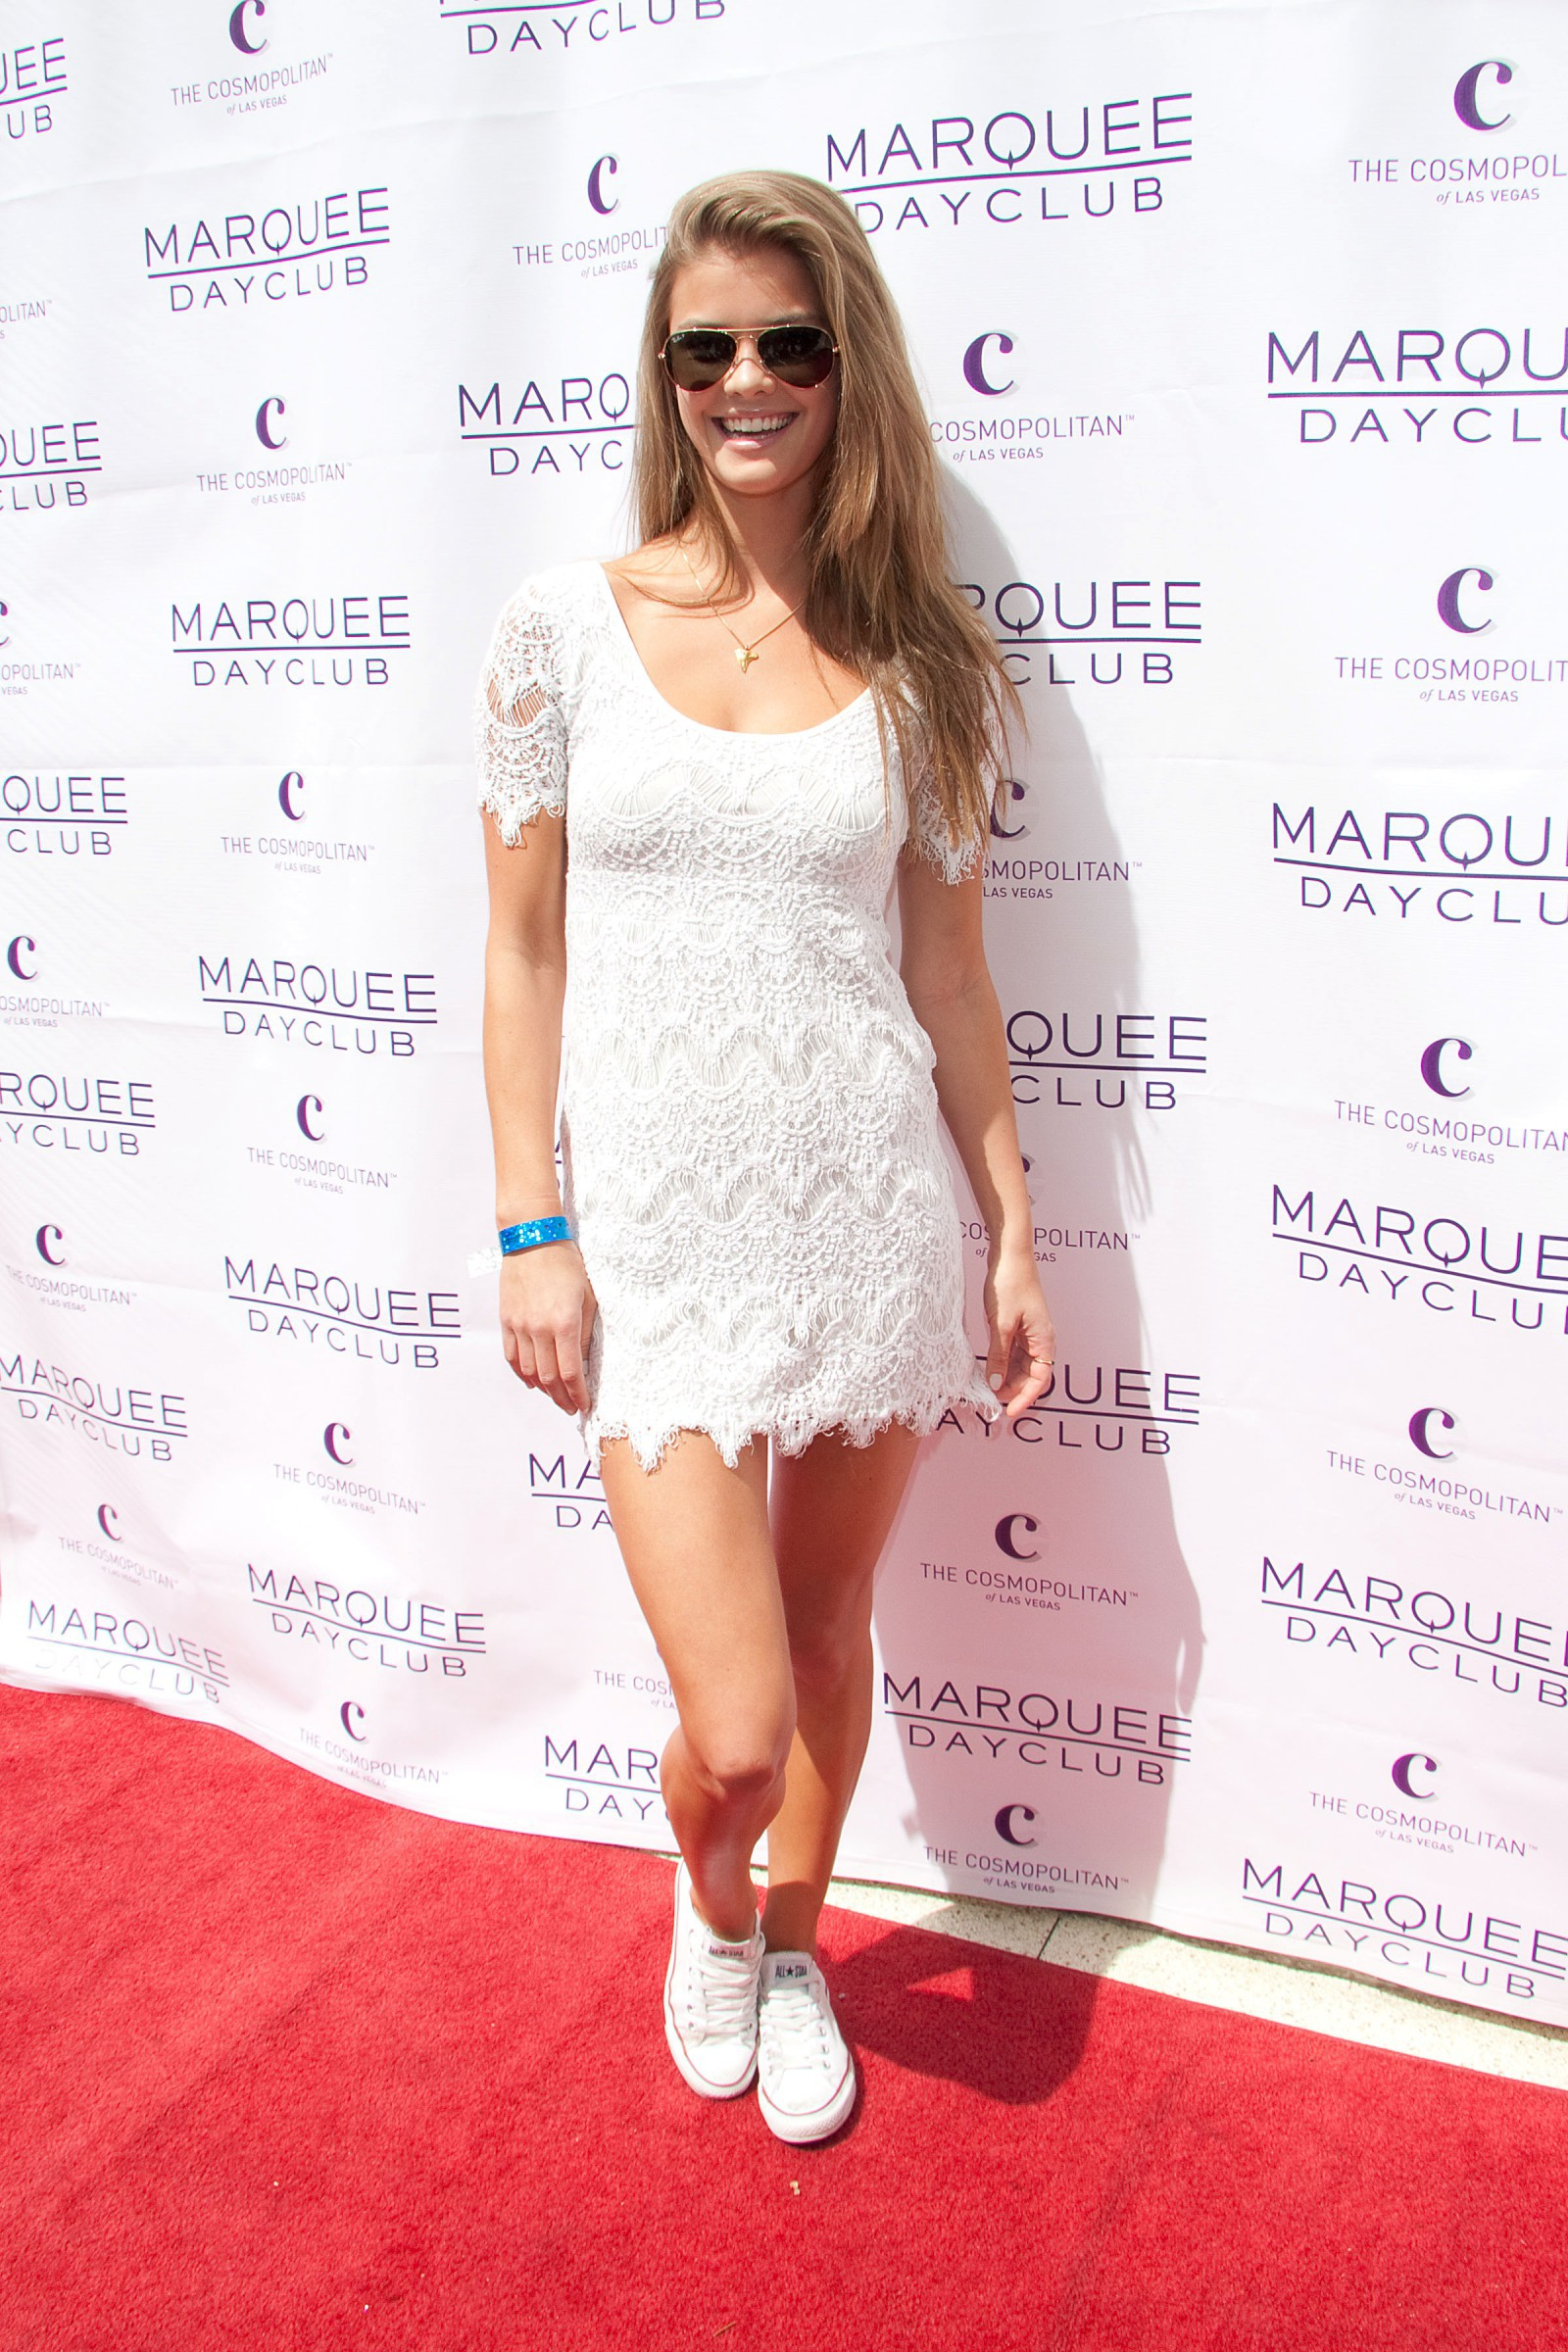 nina-agdal-marquee-dayclub-2013-season-grand-opening-april-6-2013-01